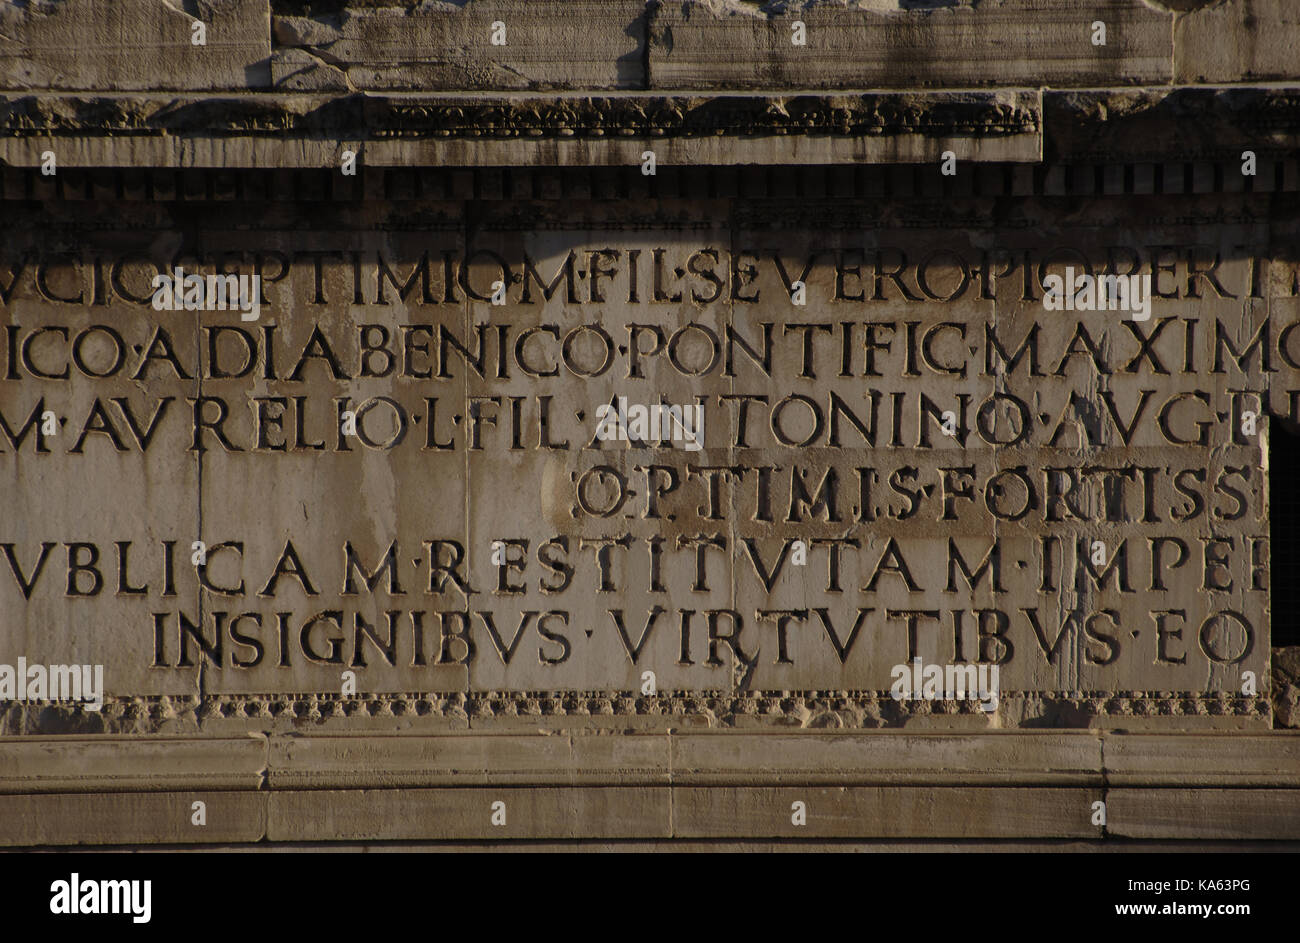 triumphal roman archs essay By analyzing concrete used to build 2,000-year-old roman structures, a team of scientists may have found a longer-lasting, greener alternative to modern cement.